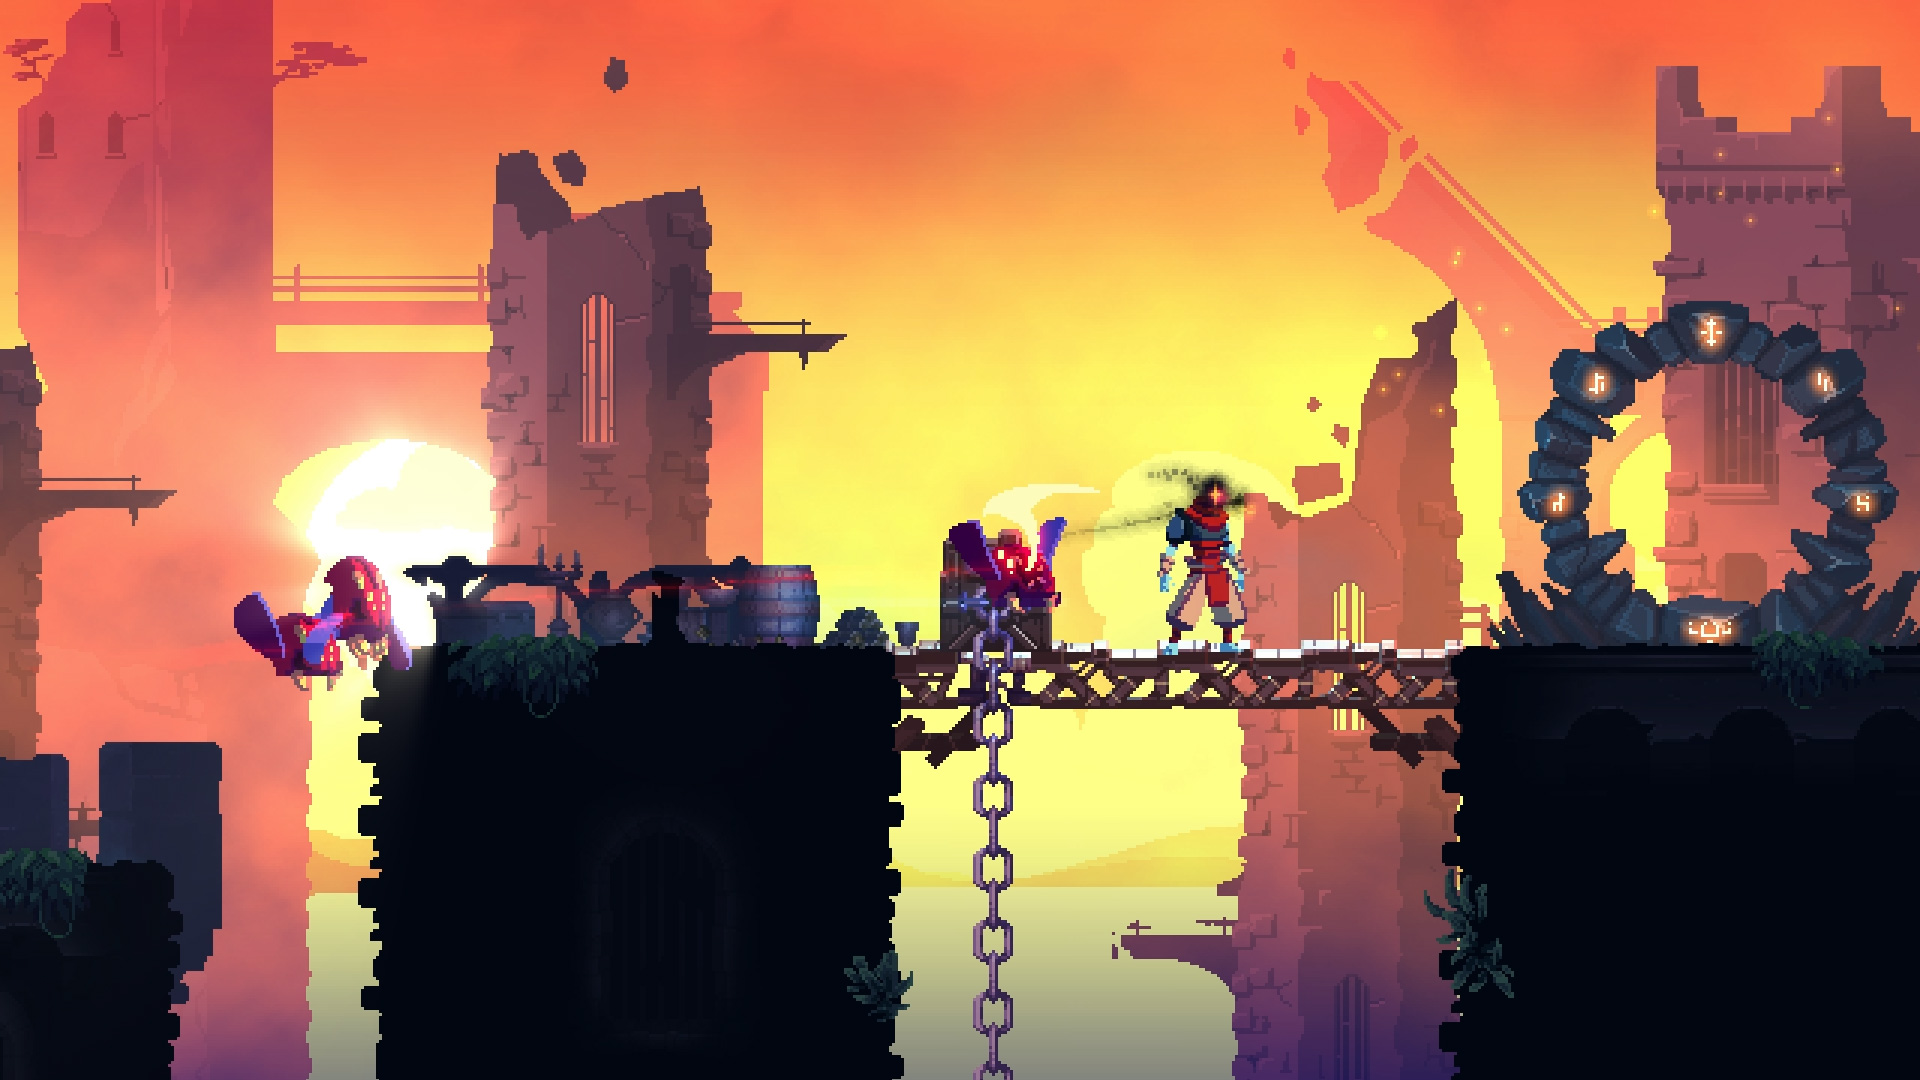 Dead Cells Developer Mulls Tapping Google Stadia To Support Games